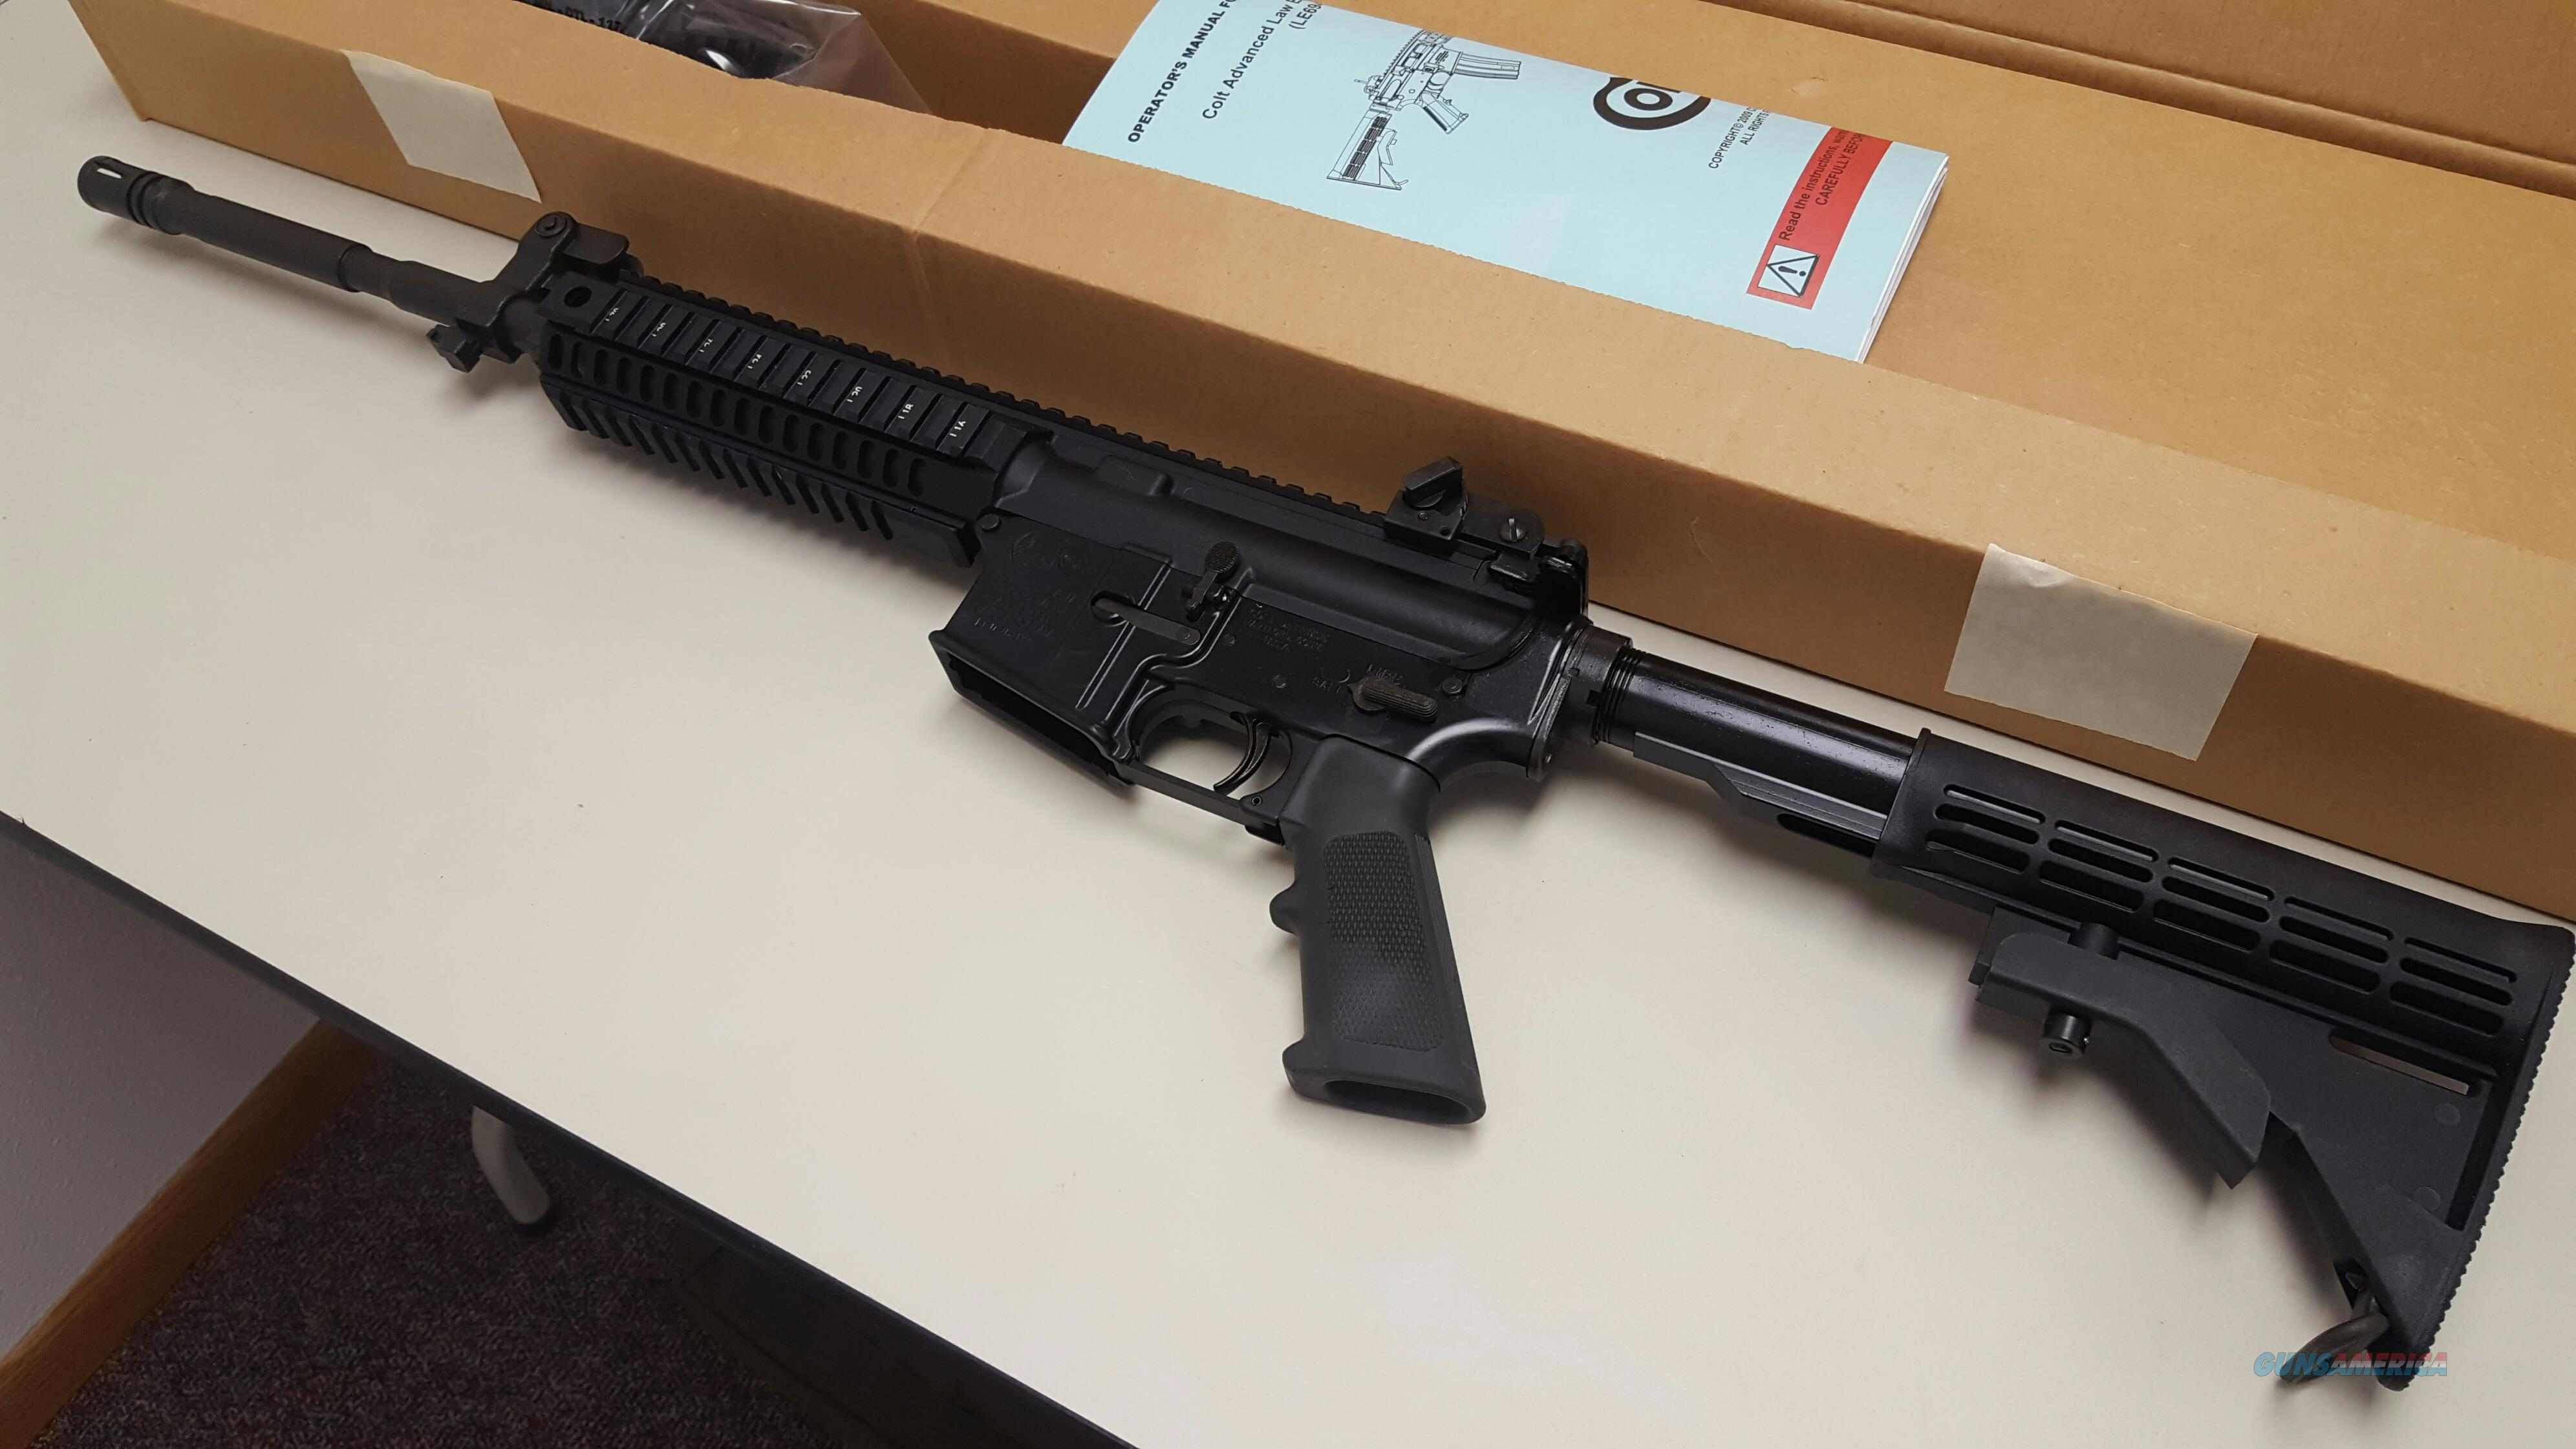 NIB Colt LE 6940 Law Enforcement Carbine - AR 15 .223/5.56 - Restricted Rollmark  Guns > Rifles > Colt Military/Tactical Rifles